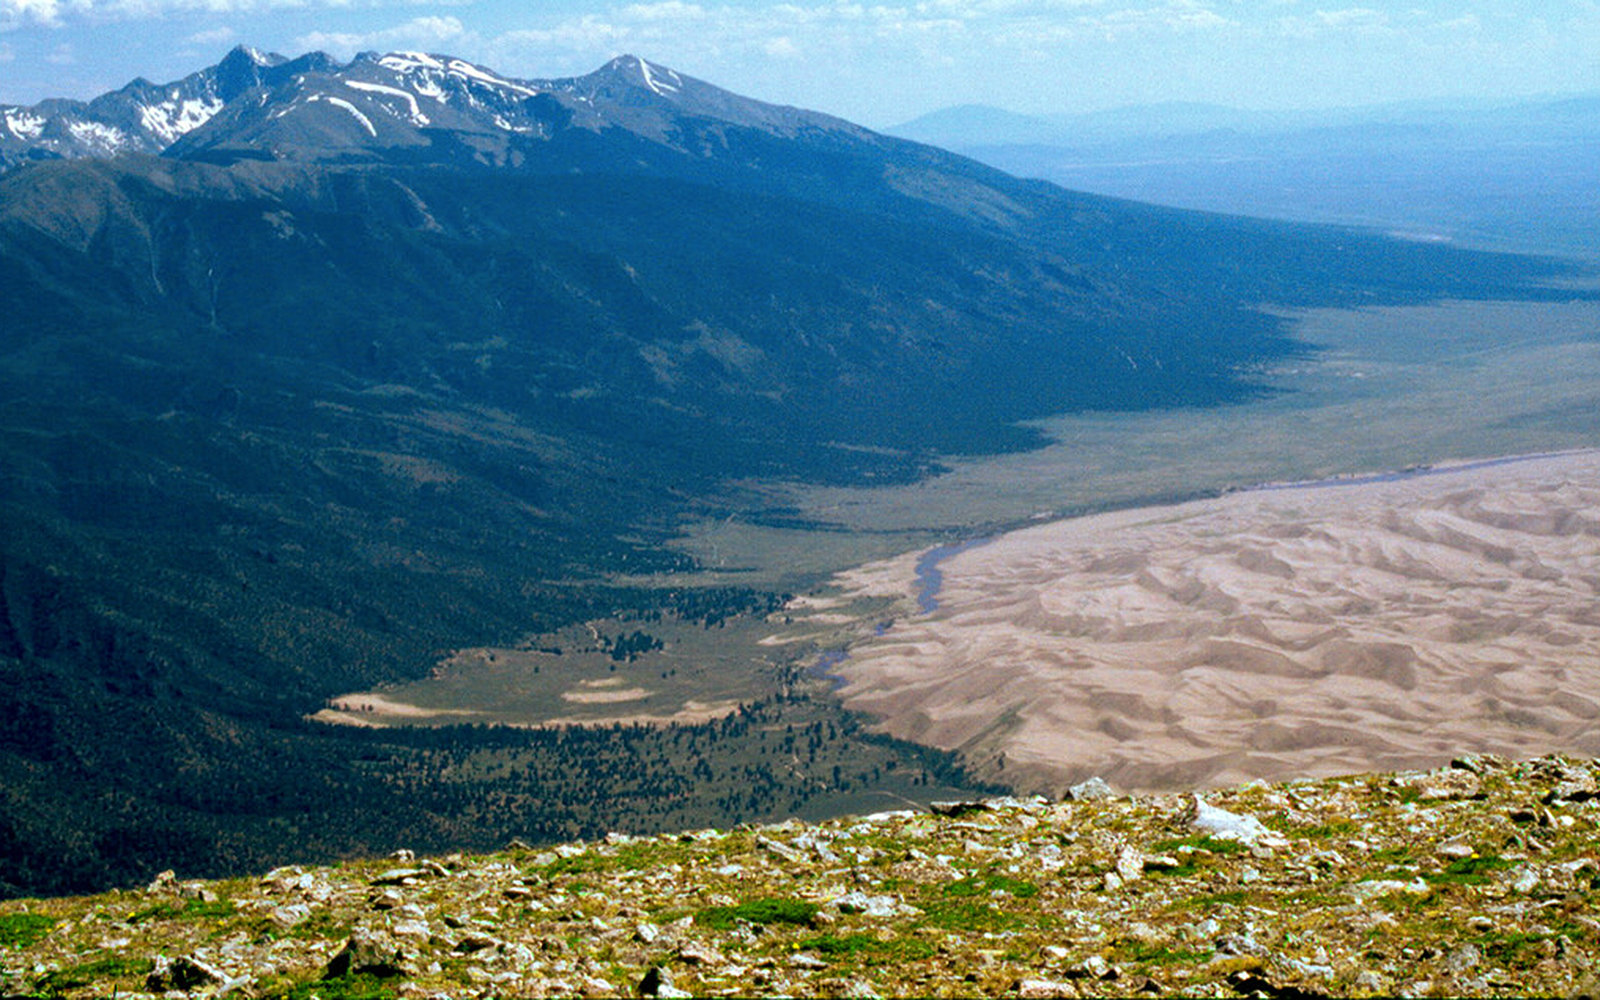 Mount Herard at Great Sand Dunes National Park & Preserve in Colorado